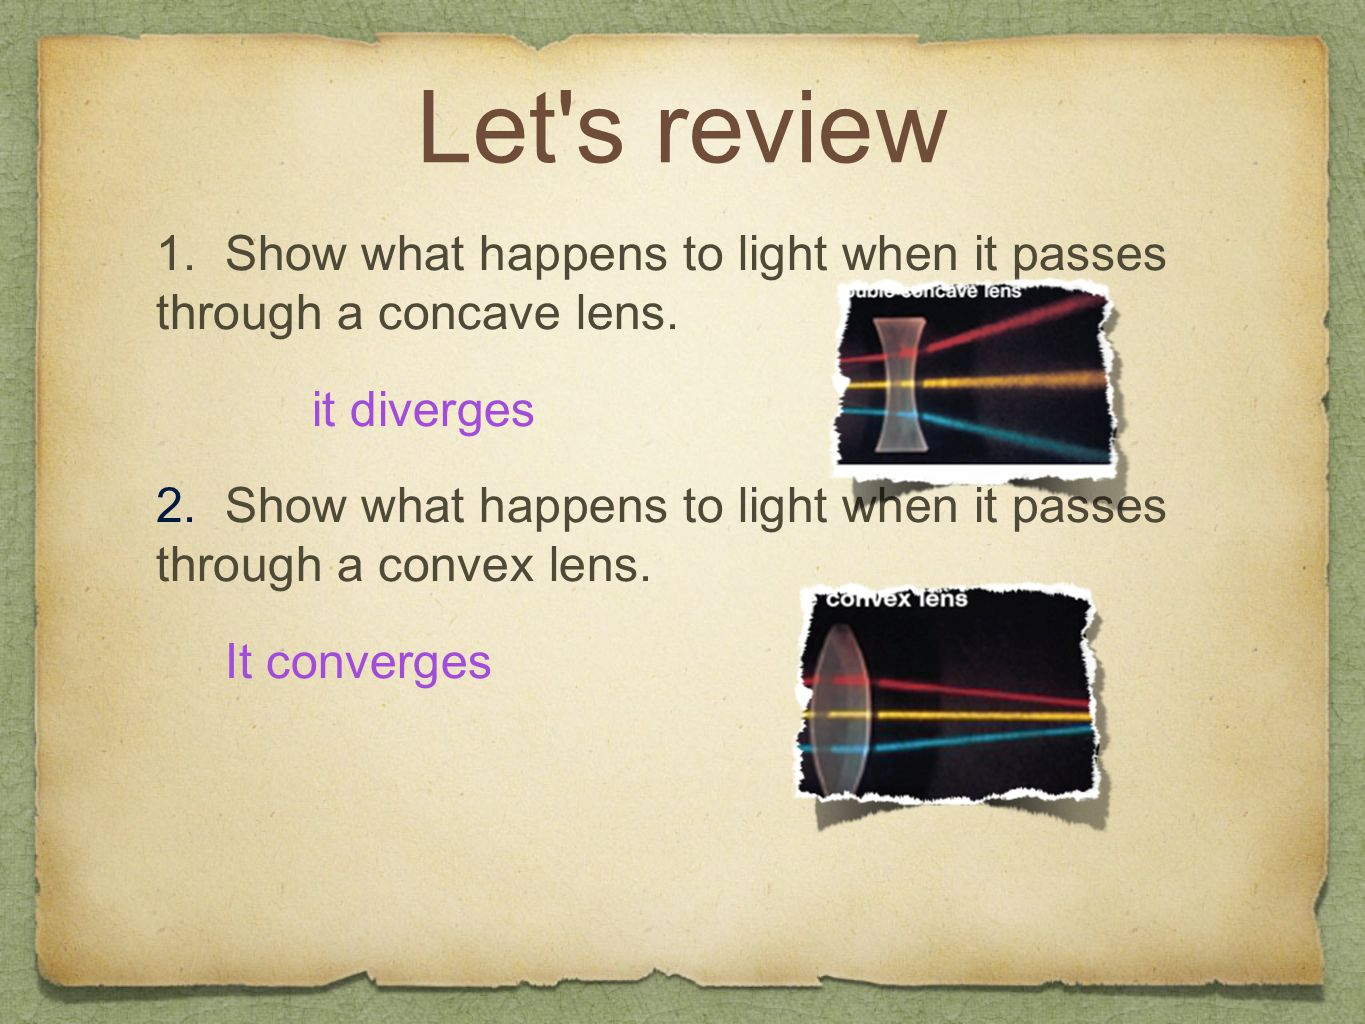 Let s review 1. Show what happens to light when it passes through a concave lens. it diverges.